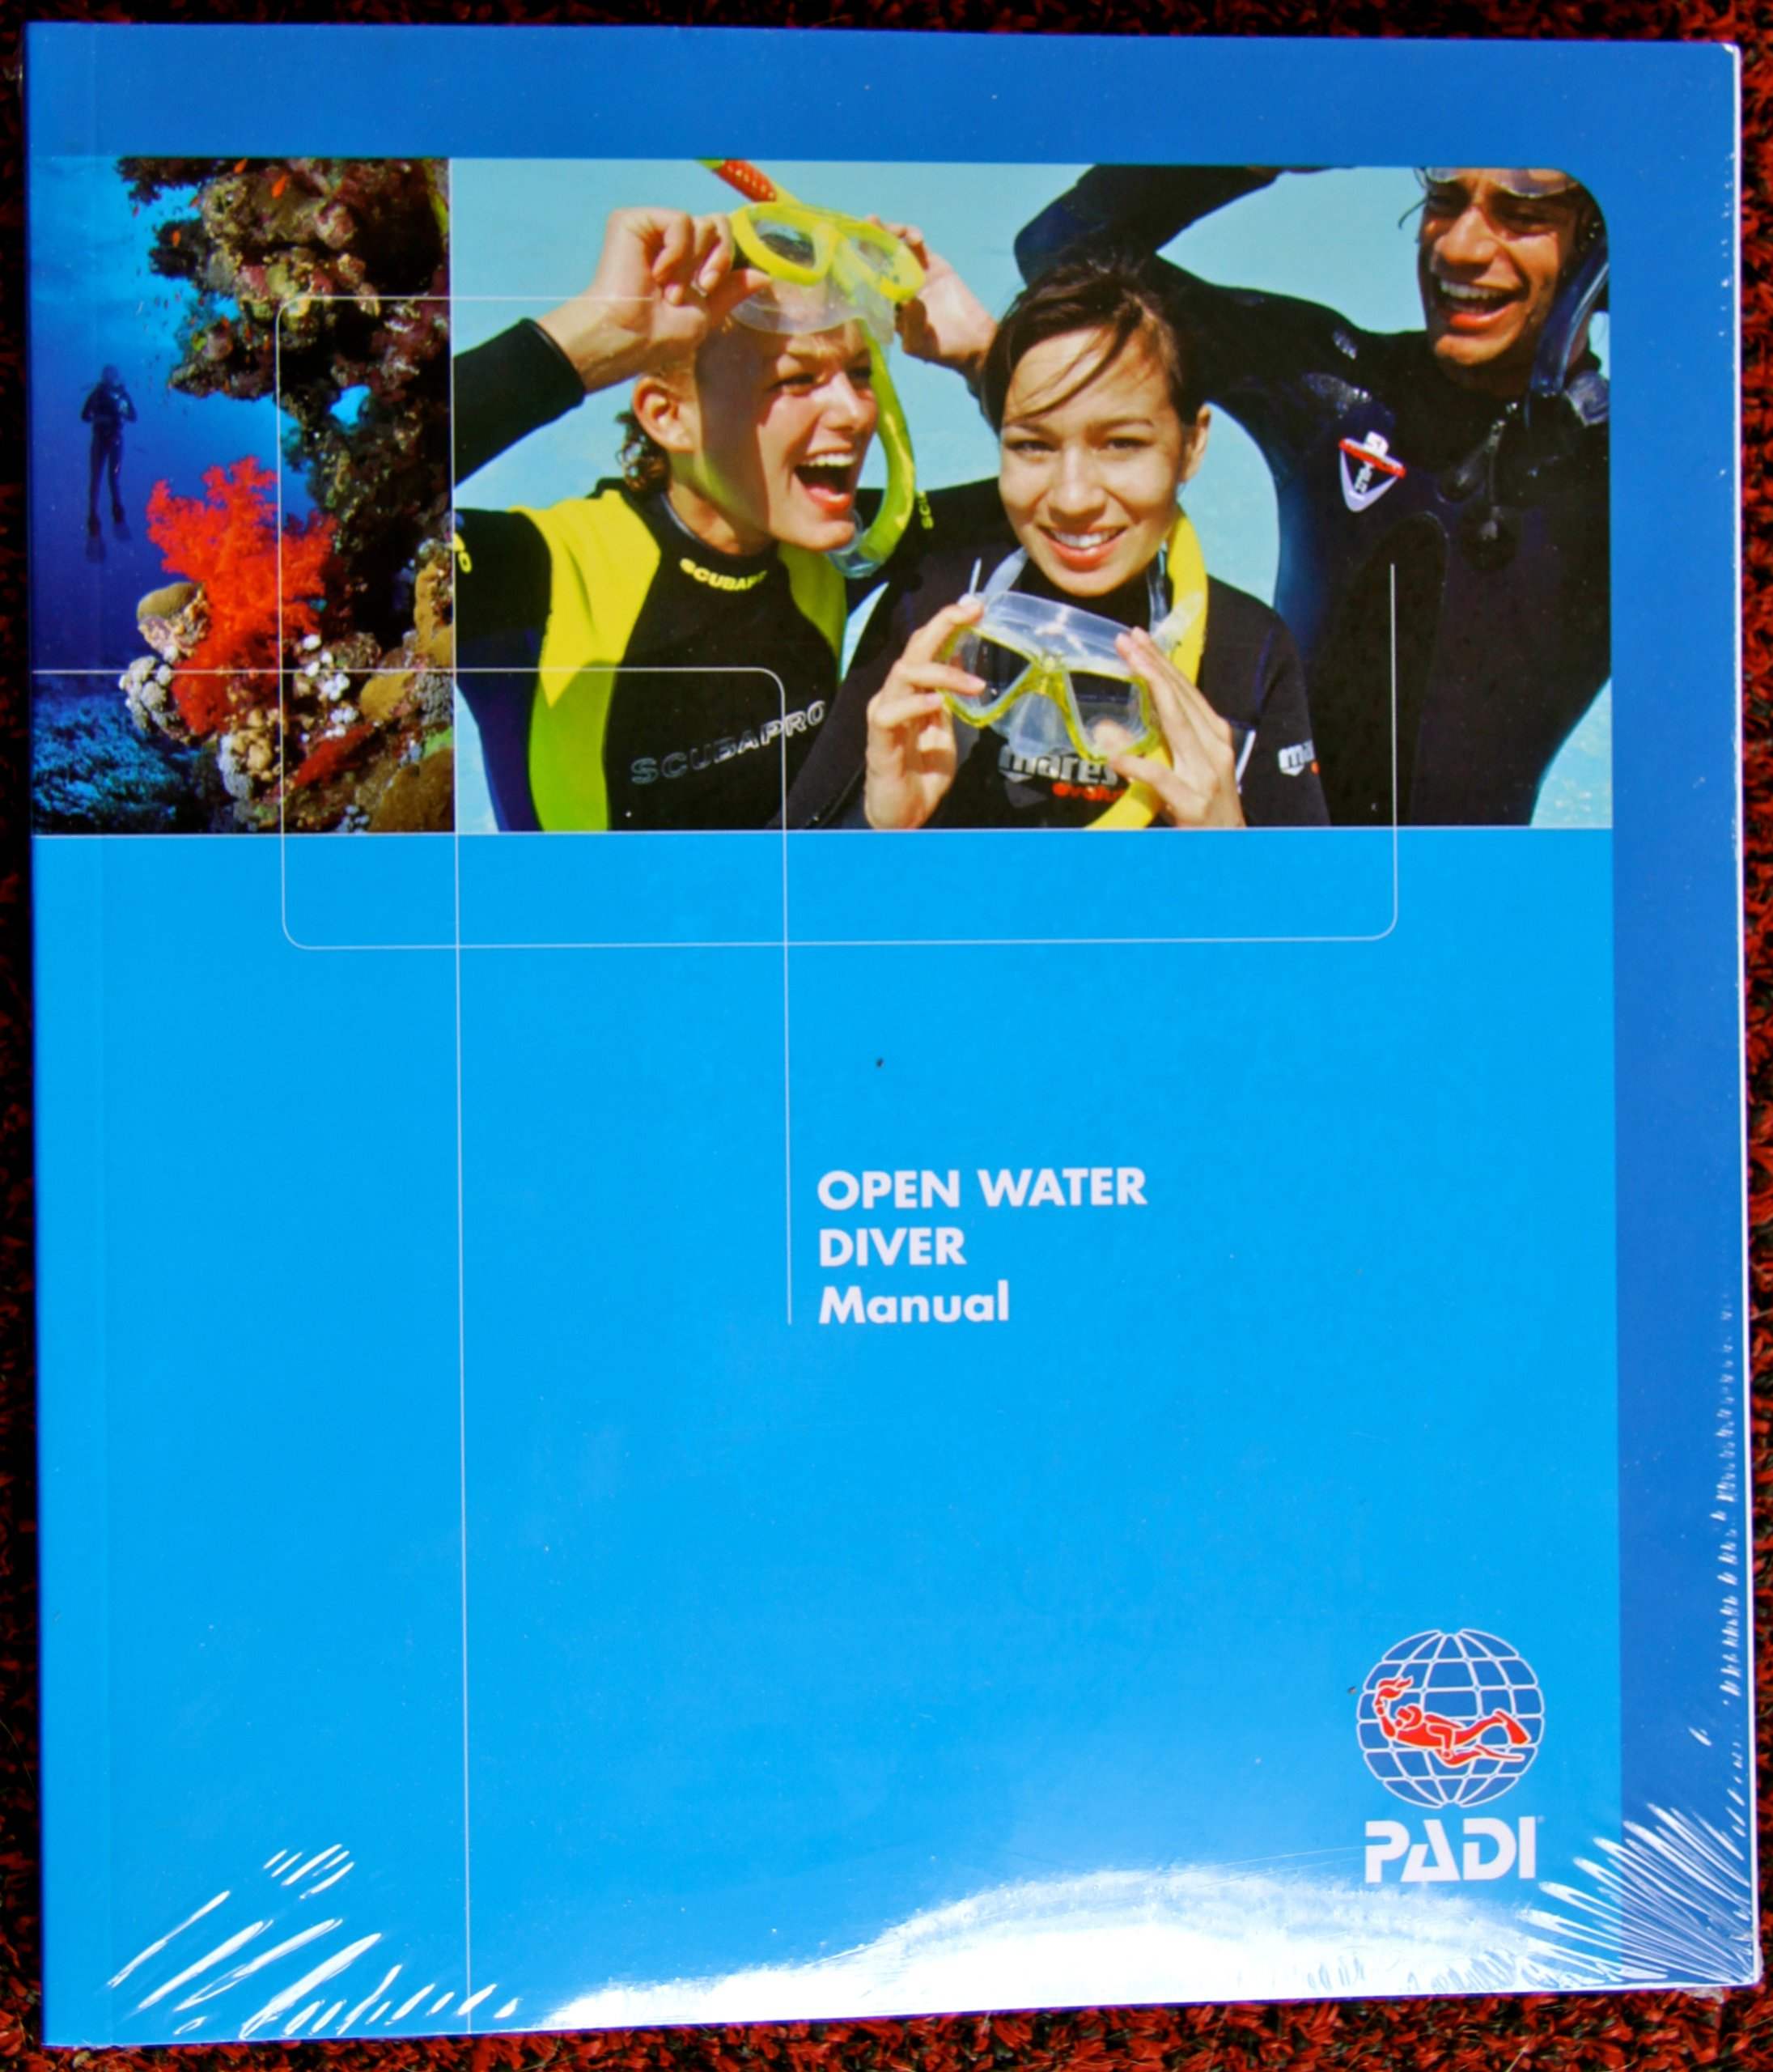 padi open water diver manual amazon co uk drew editor richardson rh amazon co uk padi diving manual pdf padi open water diver manual francais pdf